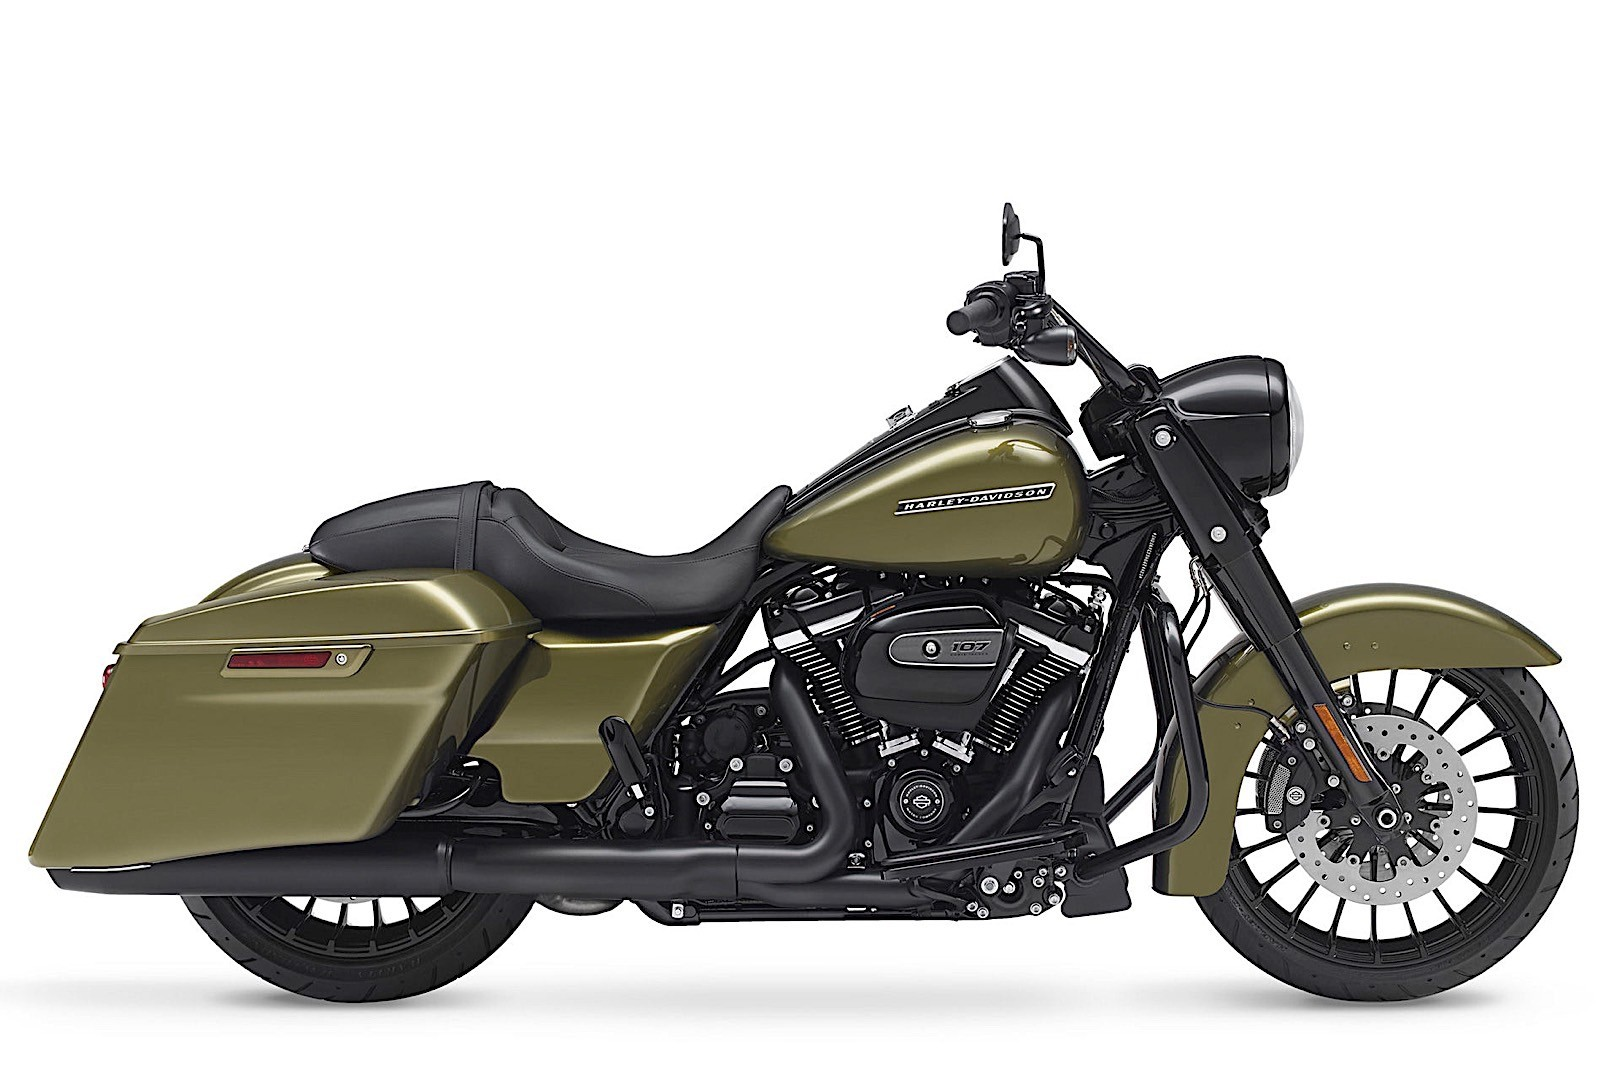 harley davidson introduces 2017 road king special autoevolution. Black Bedroom Furniture Sets. Home Design Ideas